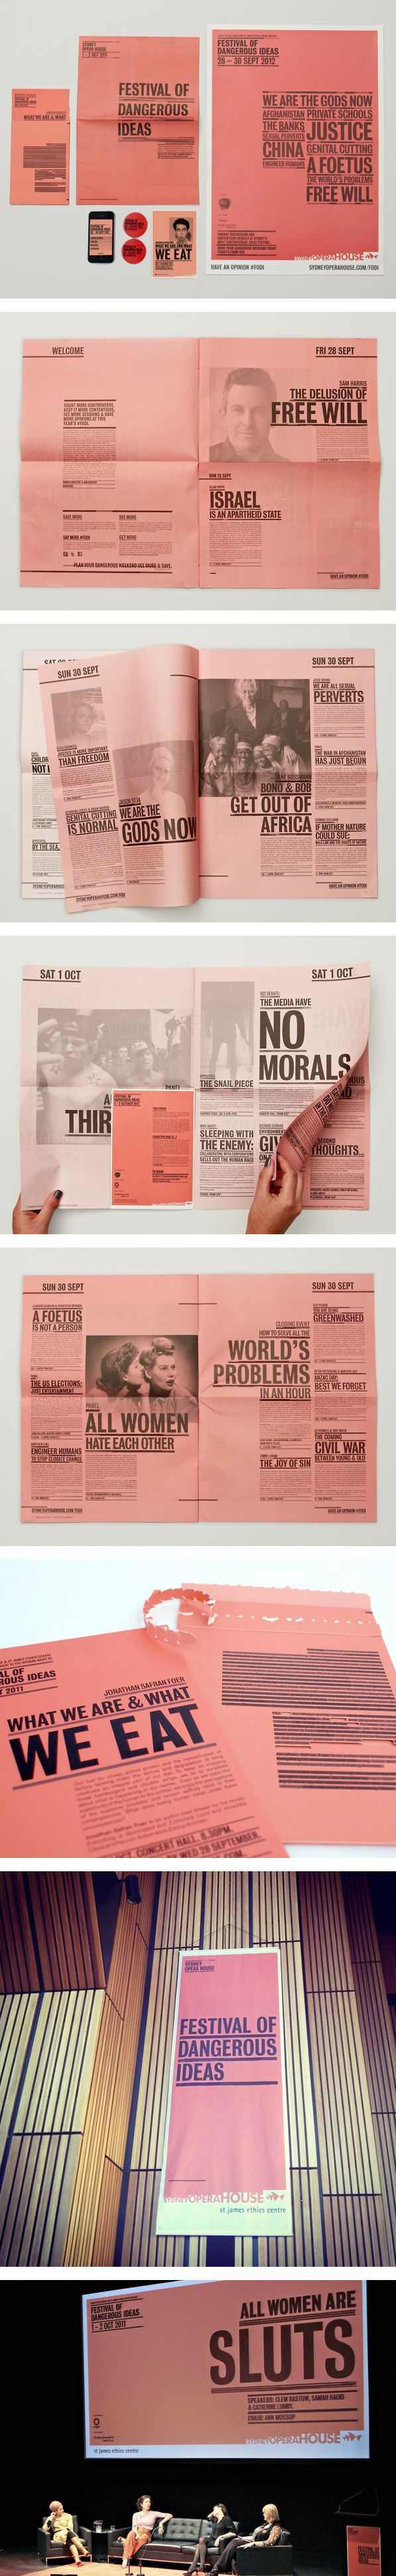 Festival of Dangerous Ideas 2011 & 2012 by Leah Procko, via Behance pink newspaper :)